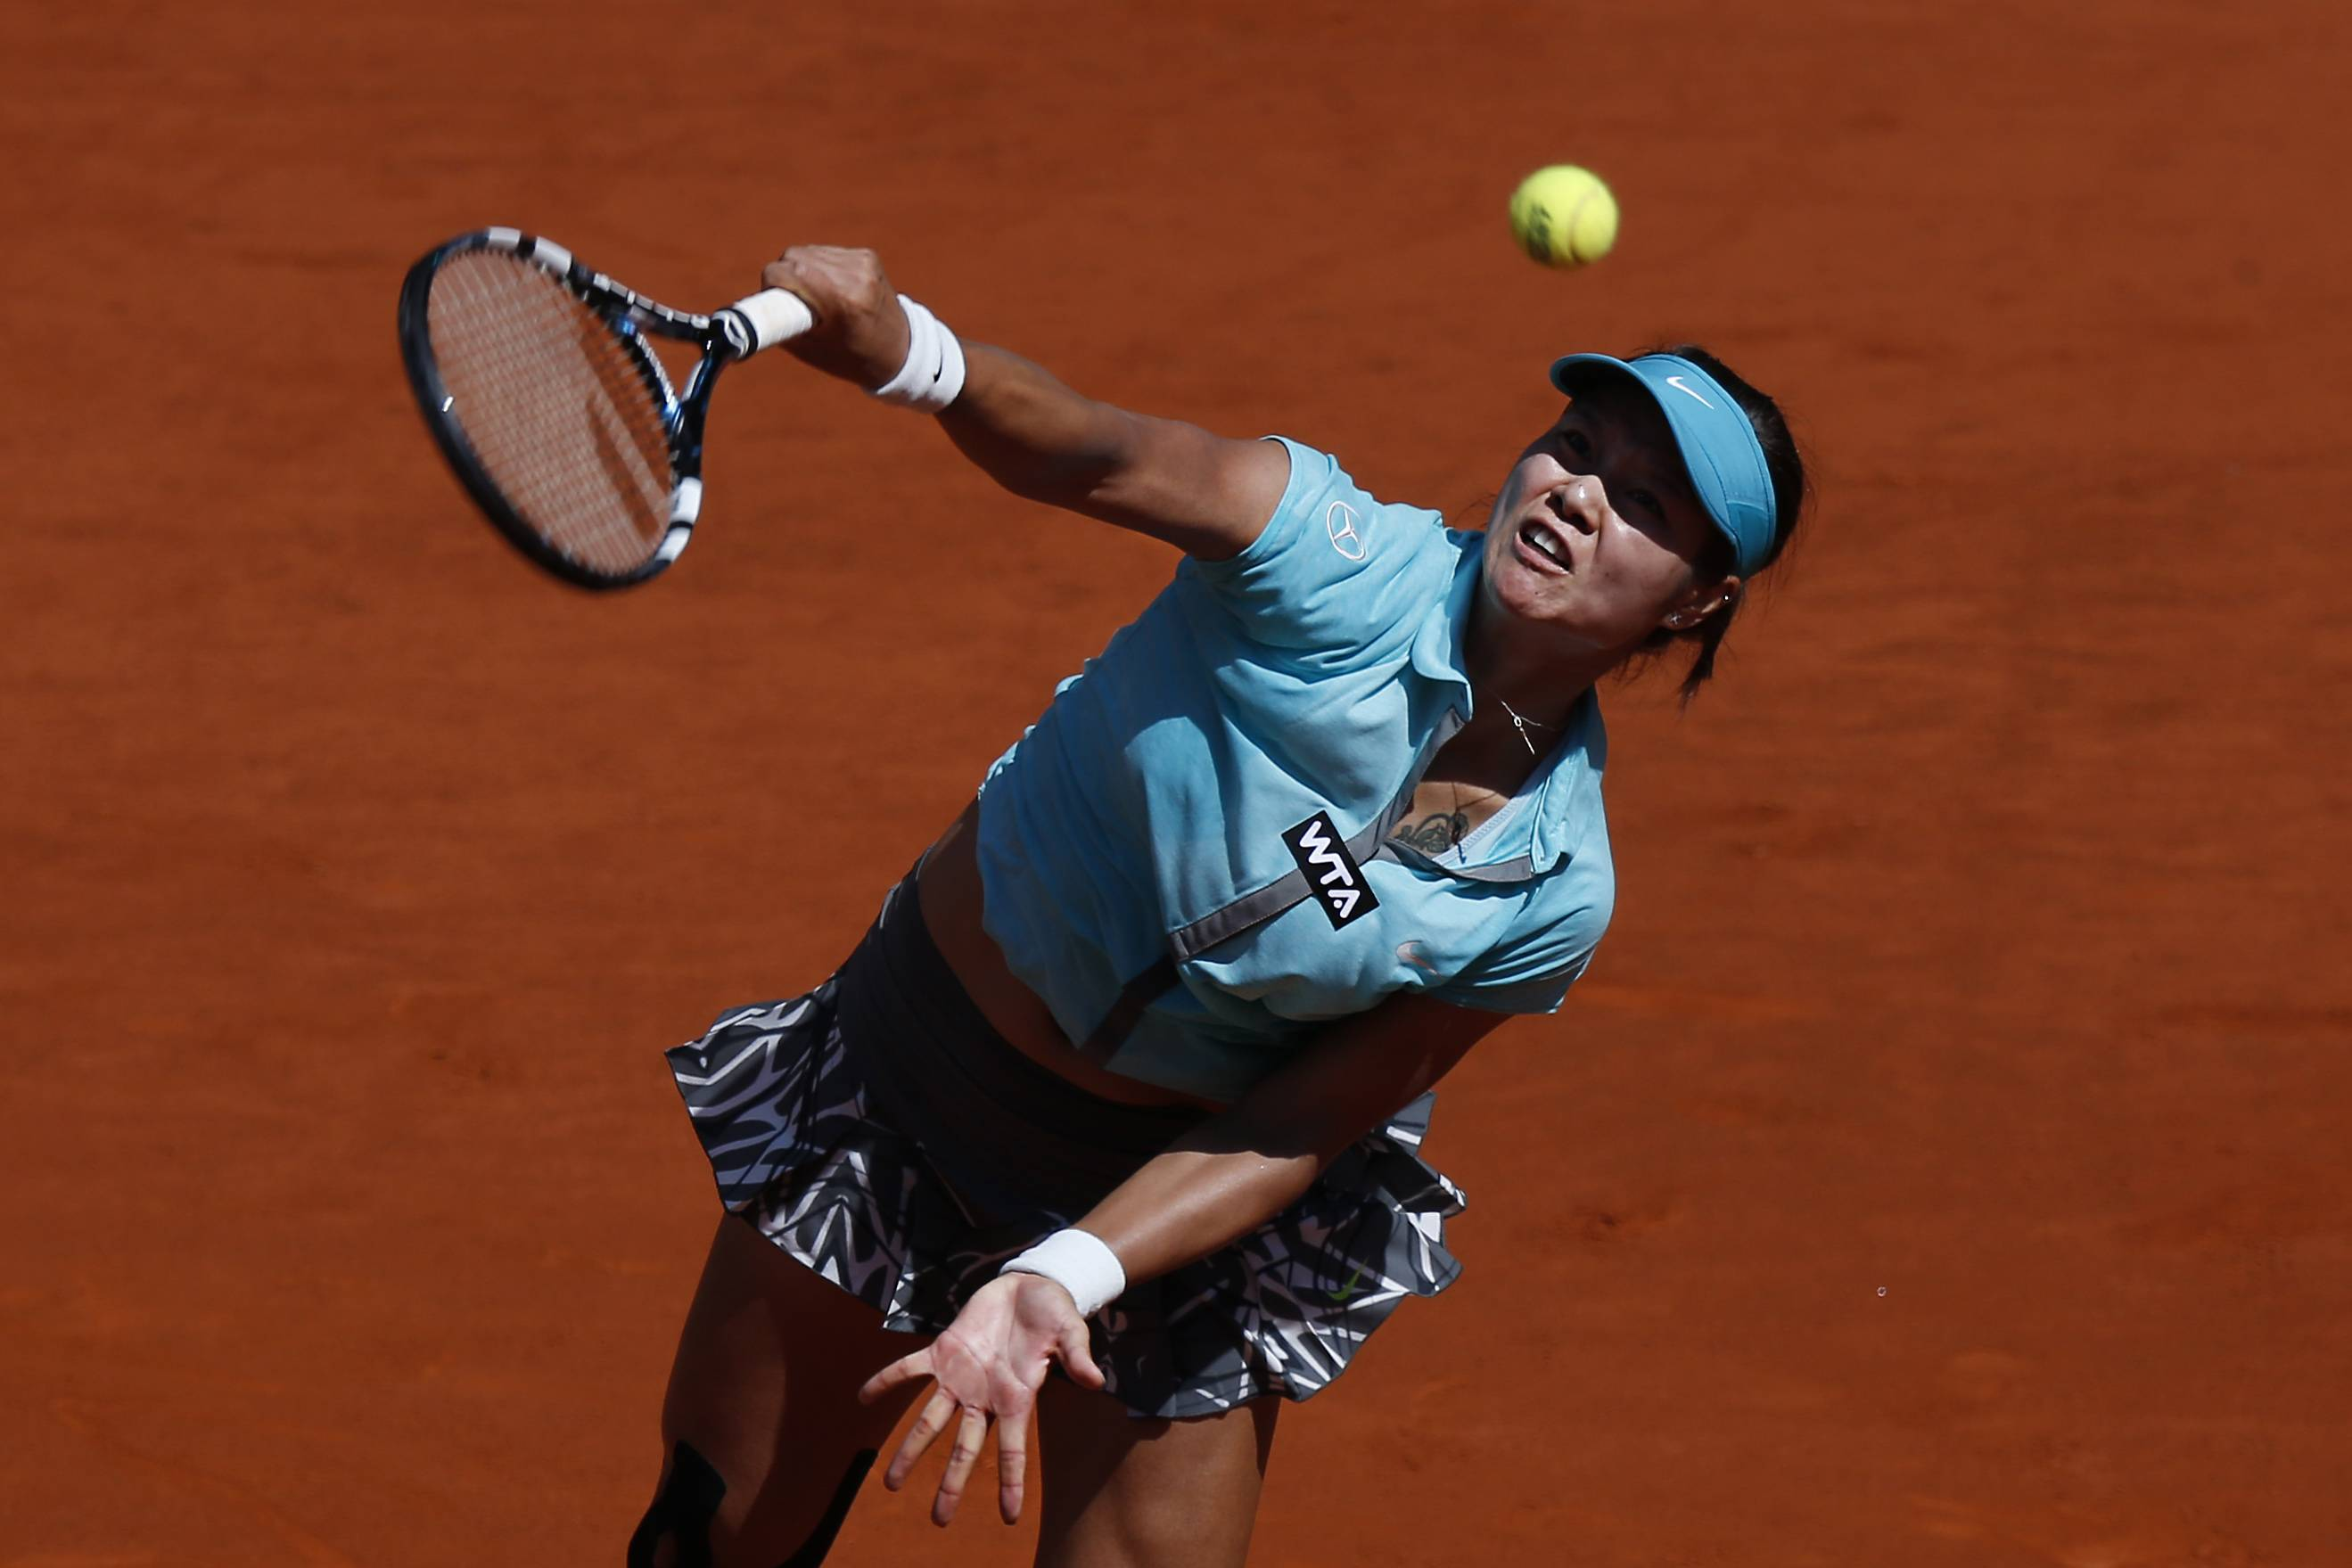 Na Li from China serves the ball during a Madrid Open tennis tournament match against Sloane Stephens from the U.S. in Madrid, Spain, Thursday, May 8, 2014.